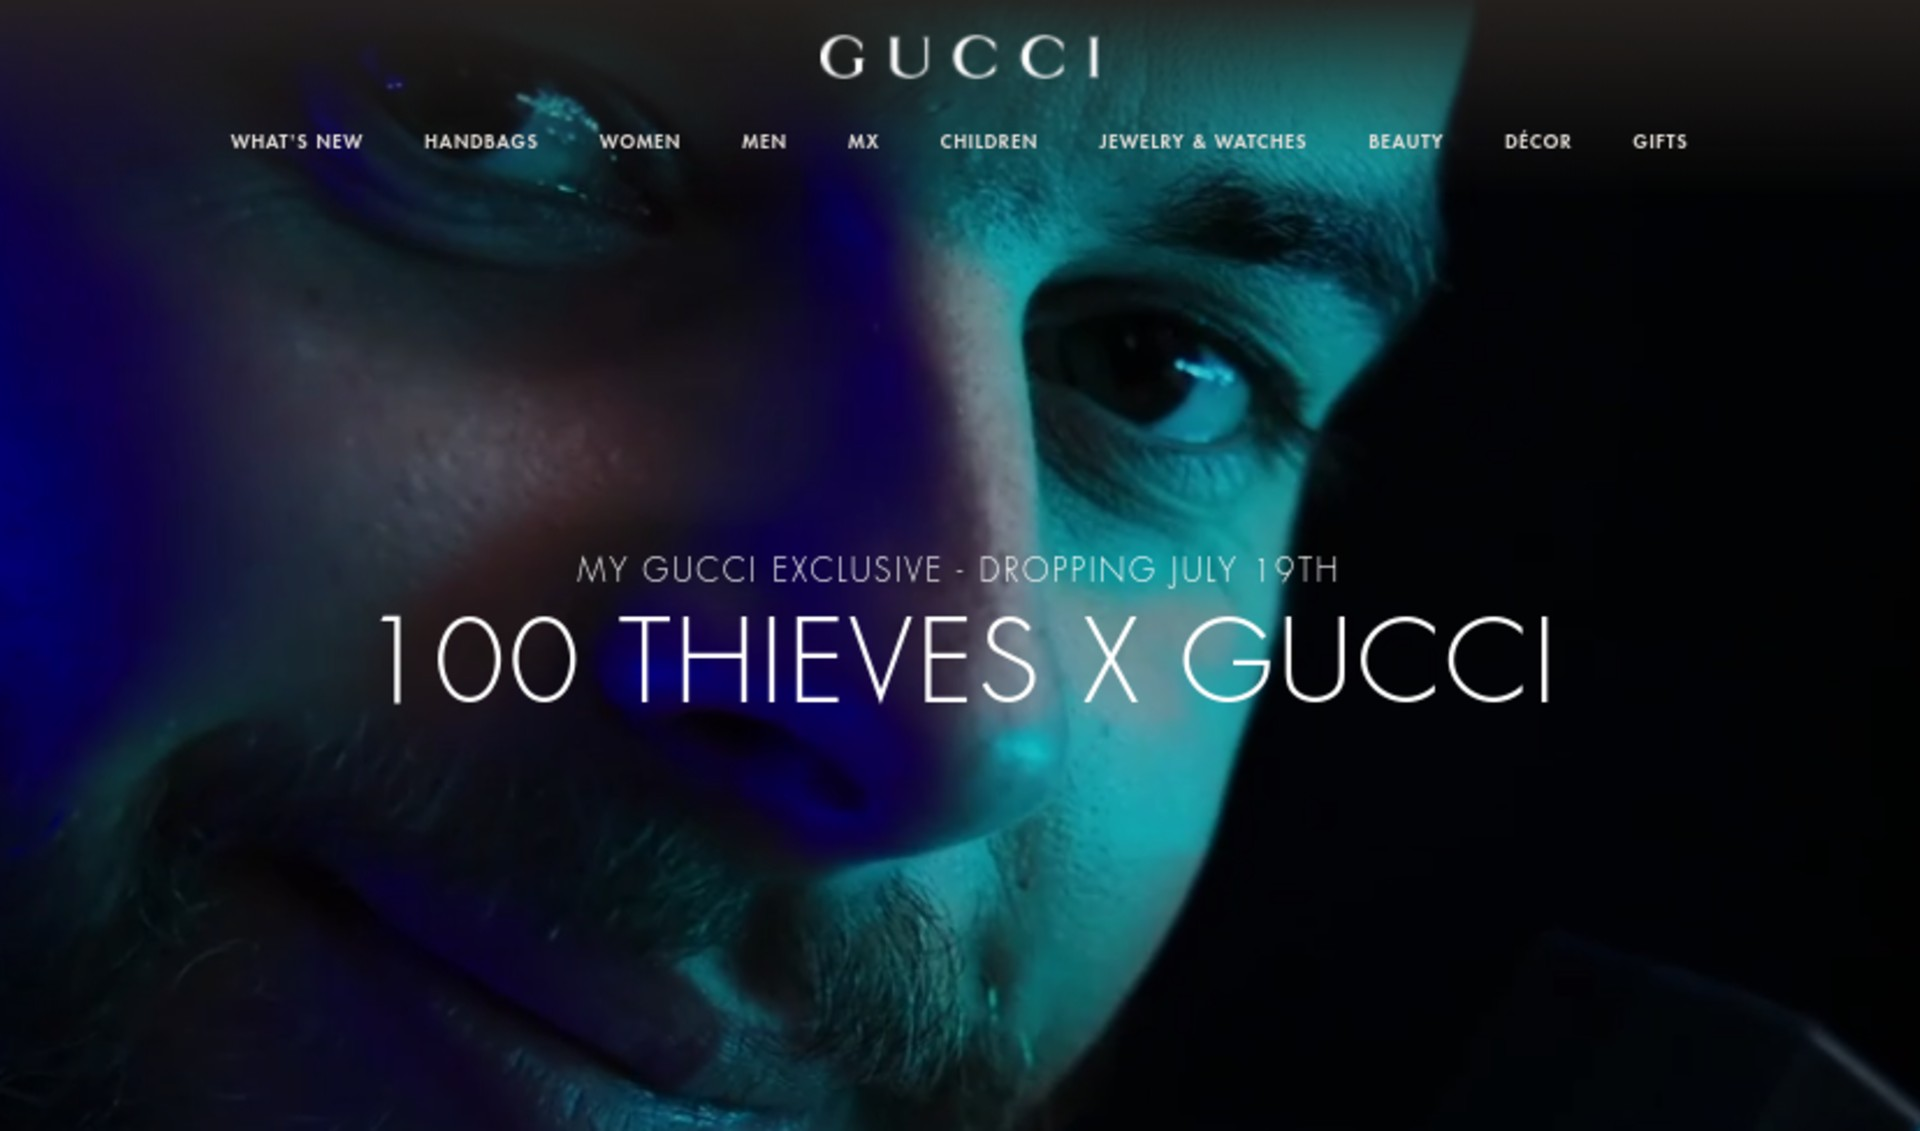 100 Thieves x Gucci Collaboration: Release Date, Where to Buy, and Everything You Need to Know